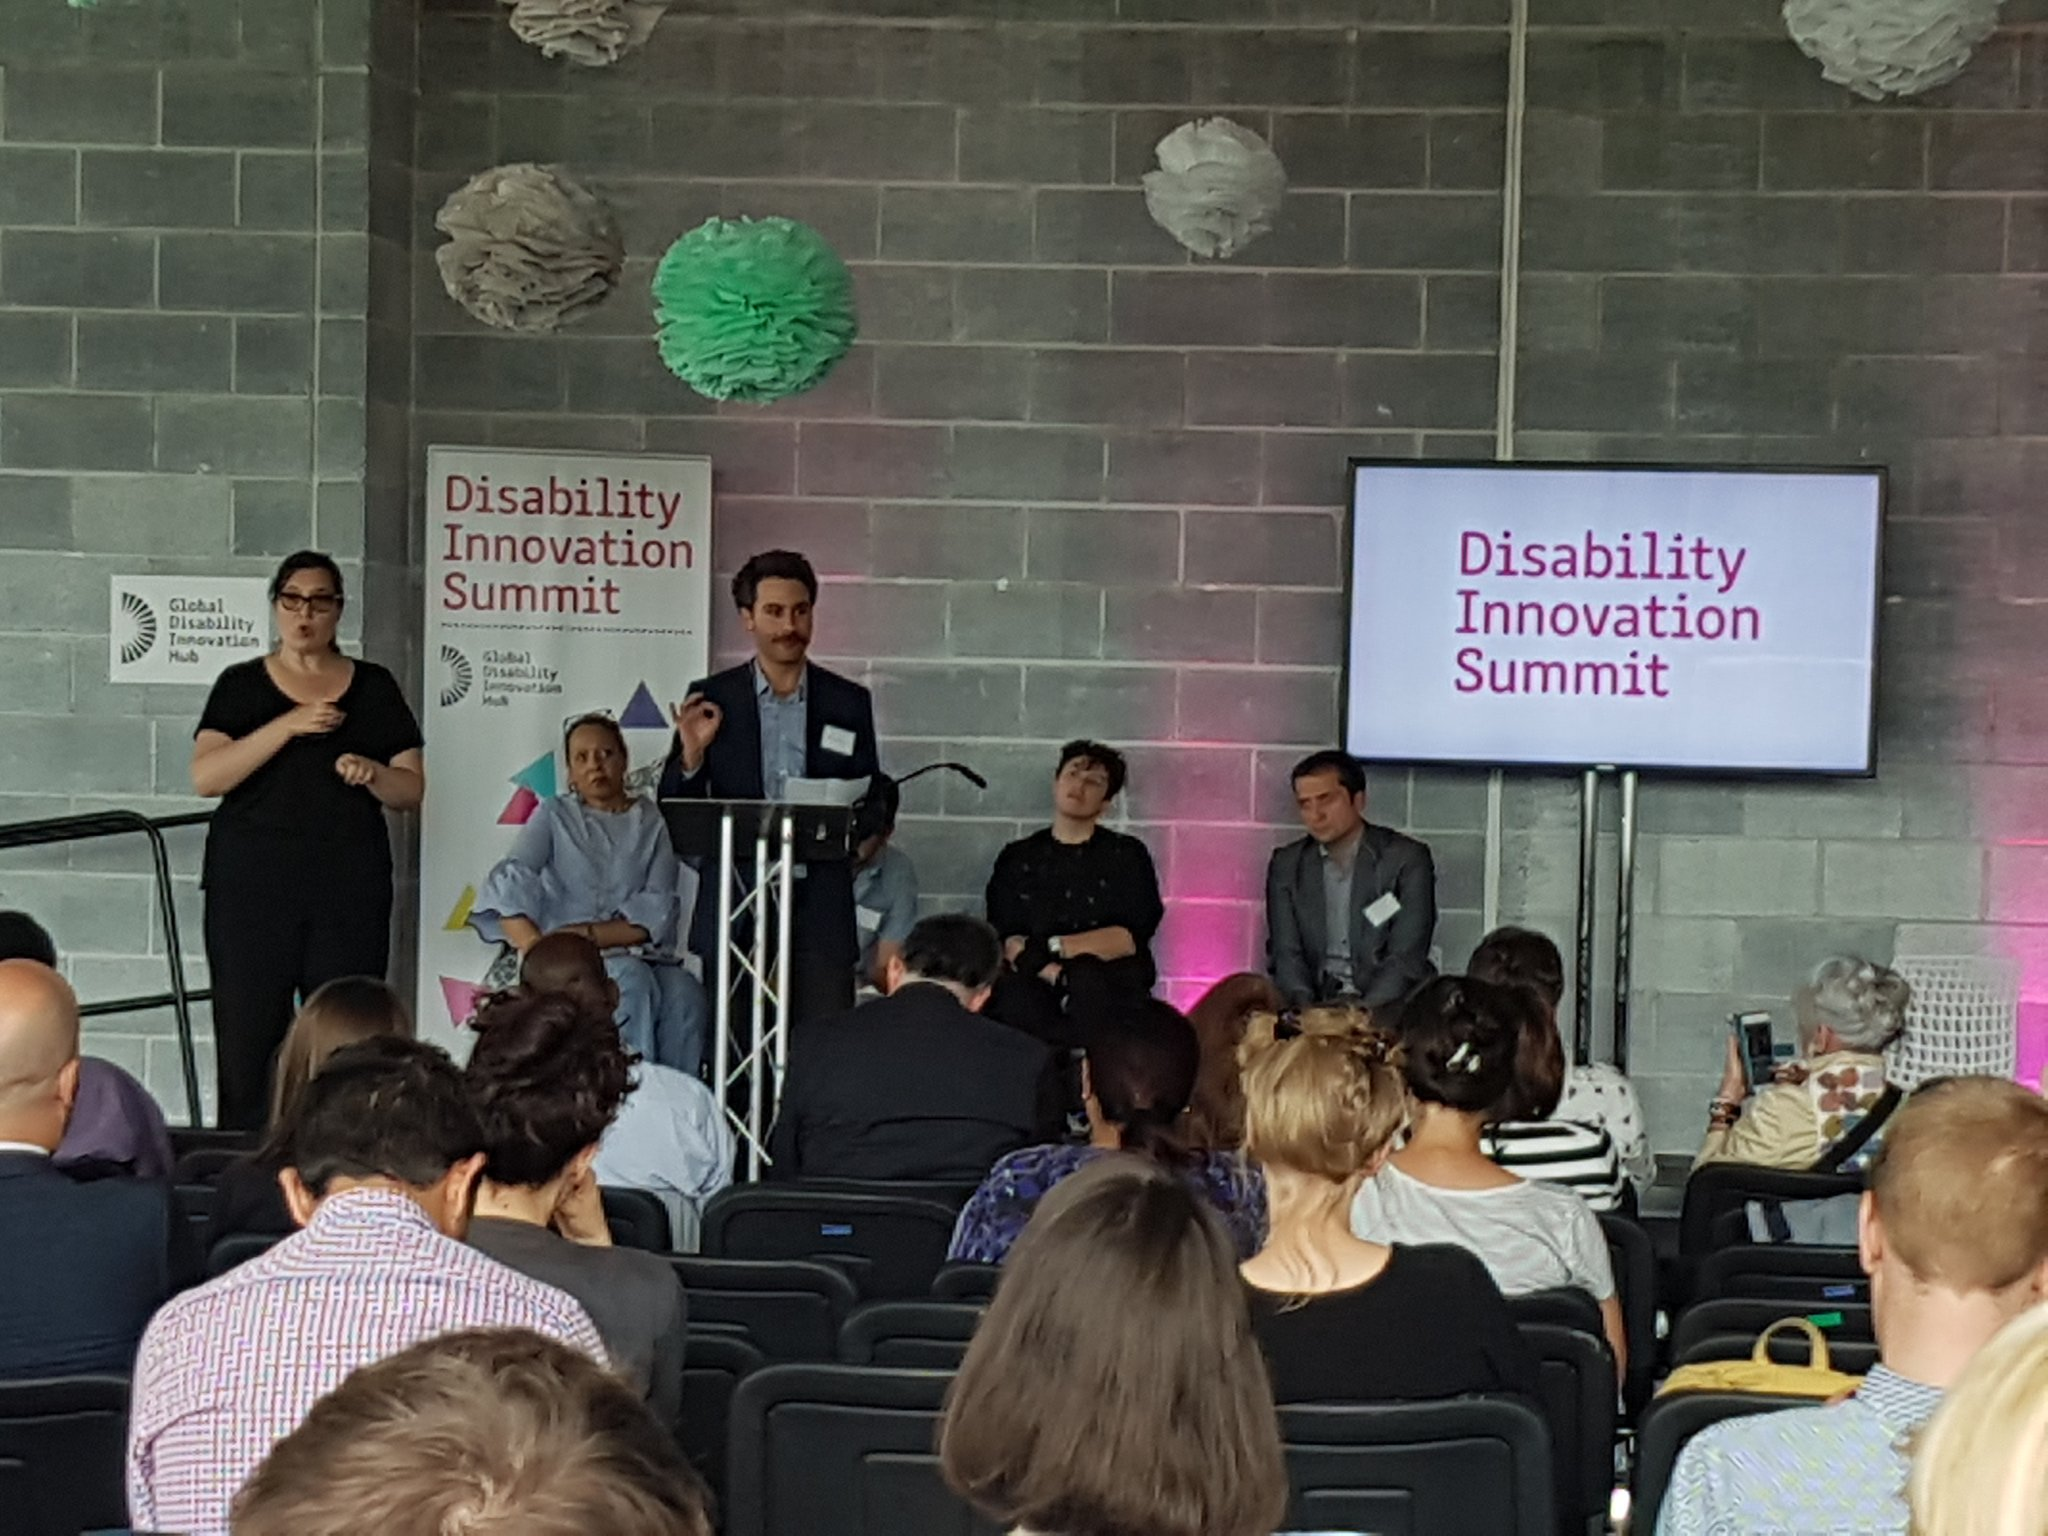 Ross Atkin speaks from lectern, Disability Innovation Summit is written on a screen behind him. As sign language interpreter stands to his right.